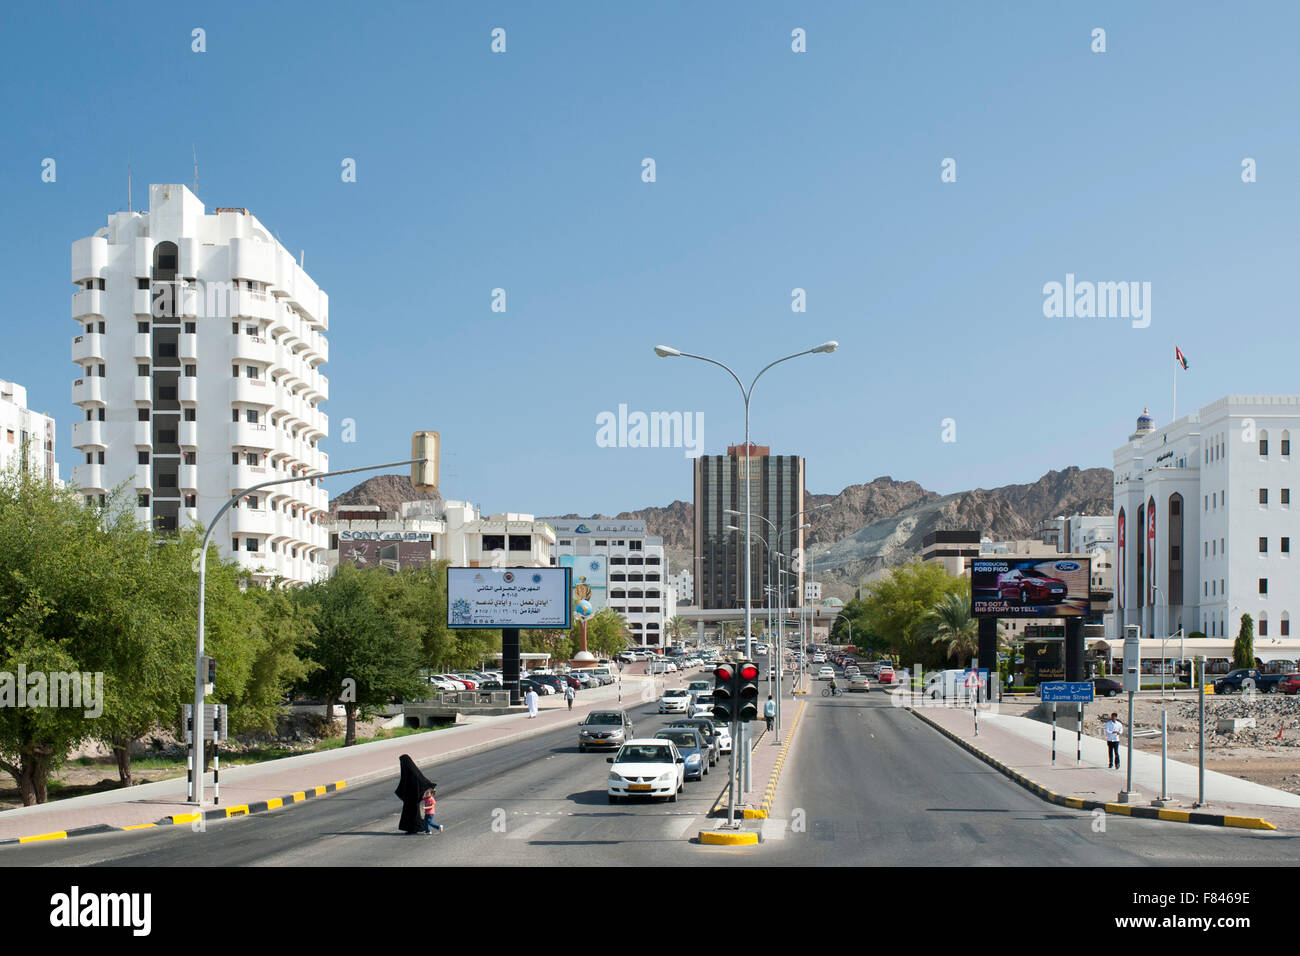 Ruwi, a district in Muscat, the capital of the Sultanate of Oman